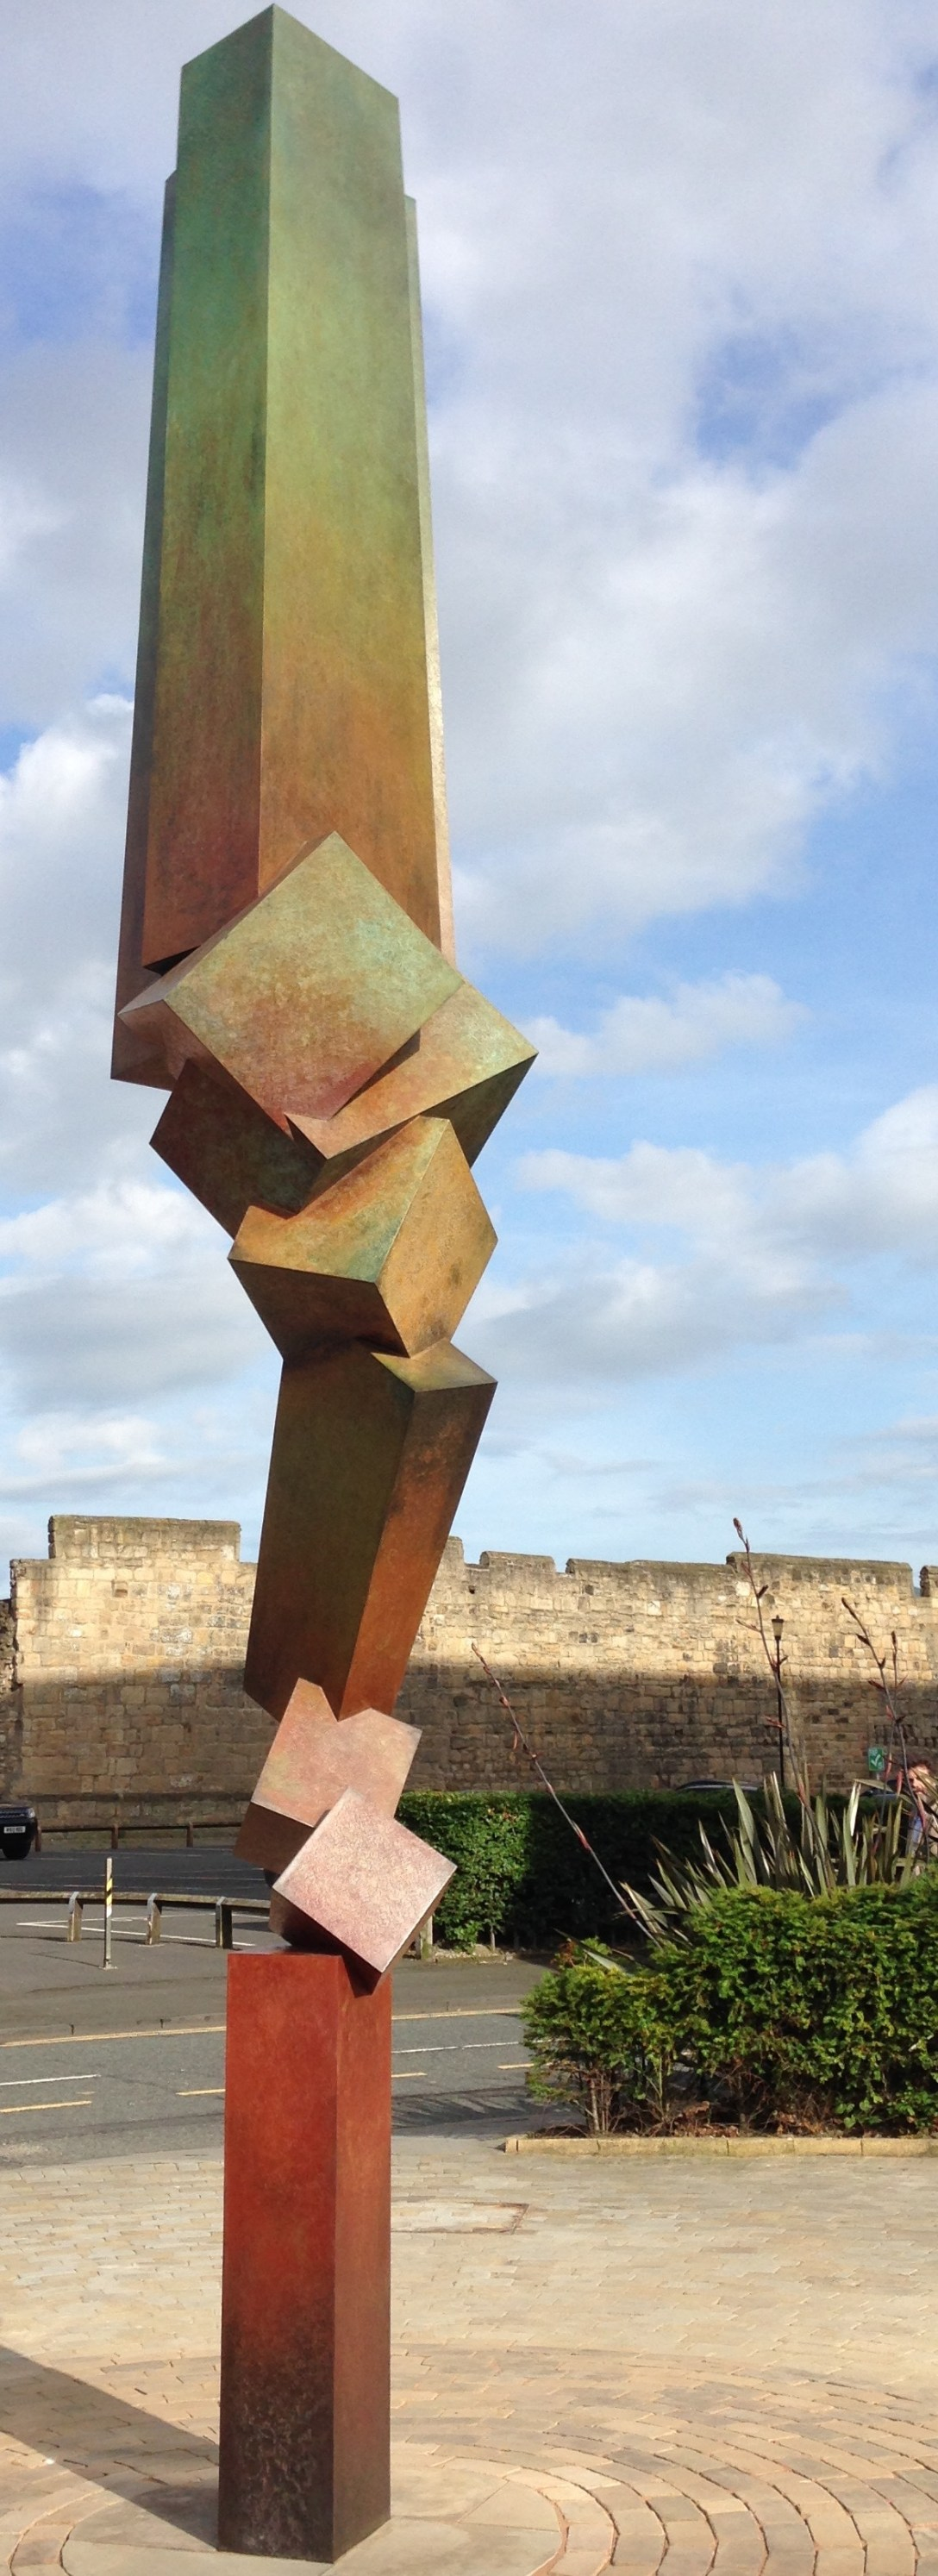 Bruce Beasley 'Bronze' 'Sculpture' with 'Patina' in Newcastle